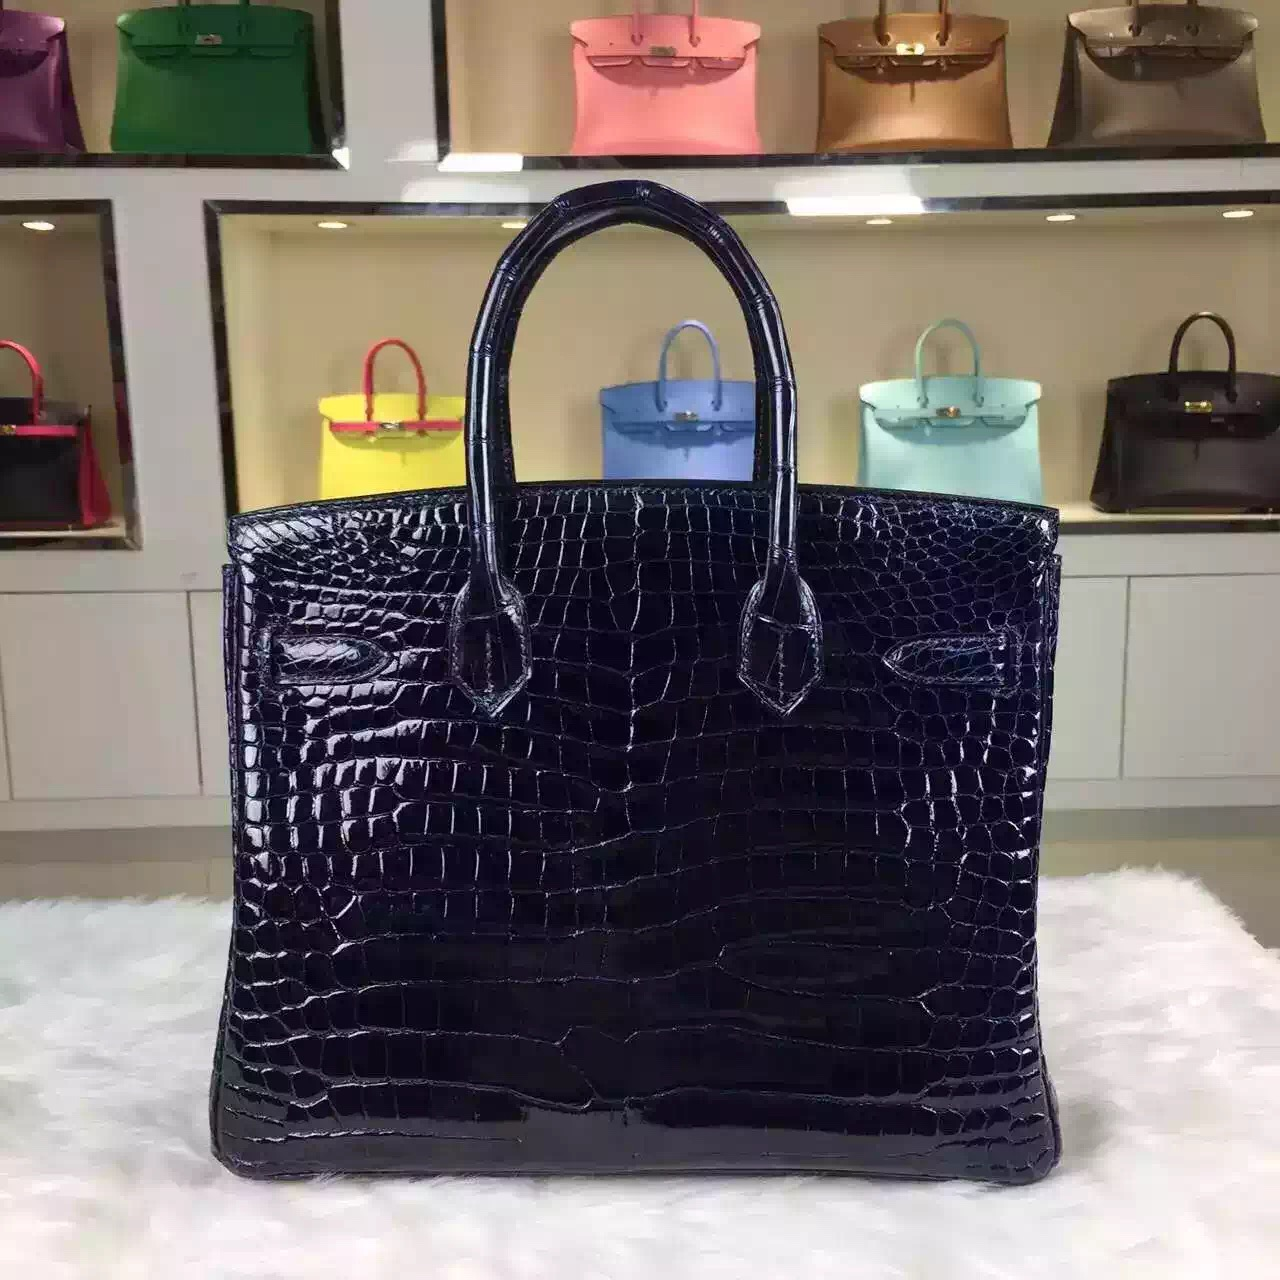 Vip Customized Hermes France Original Crocodile Shiny Skin Birkin Bag 30cm Blue Saphir